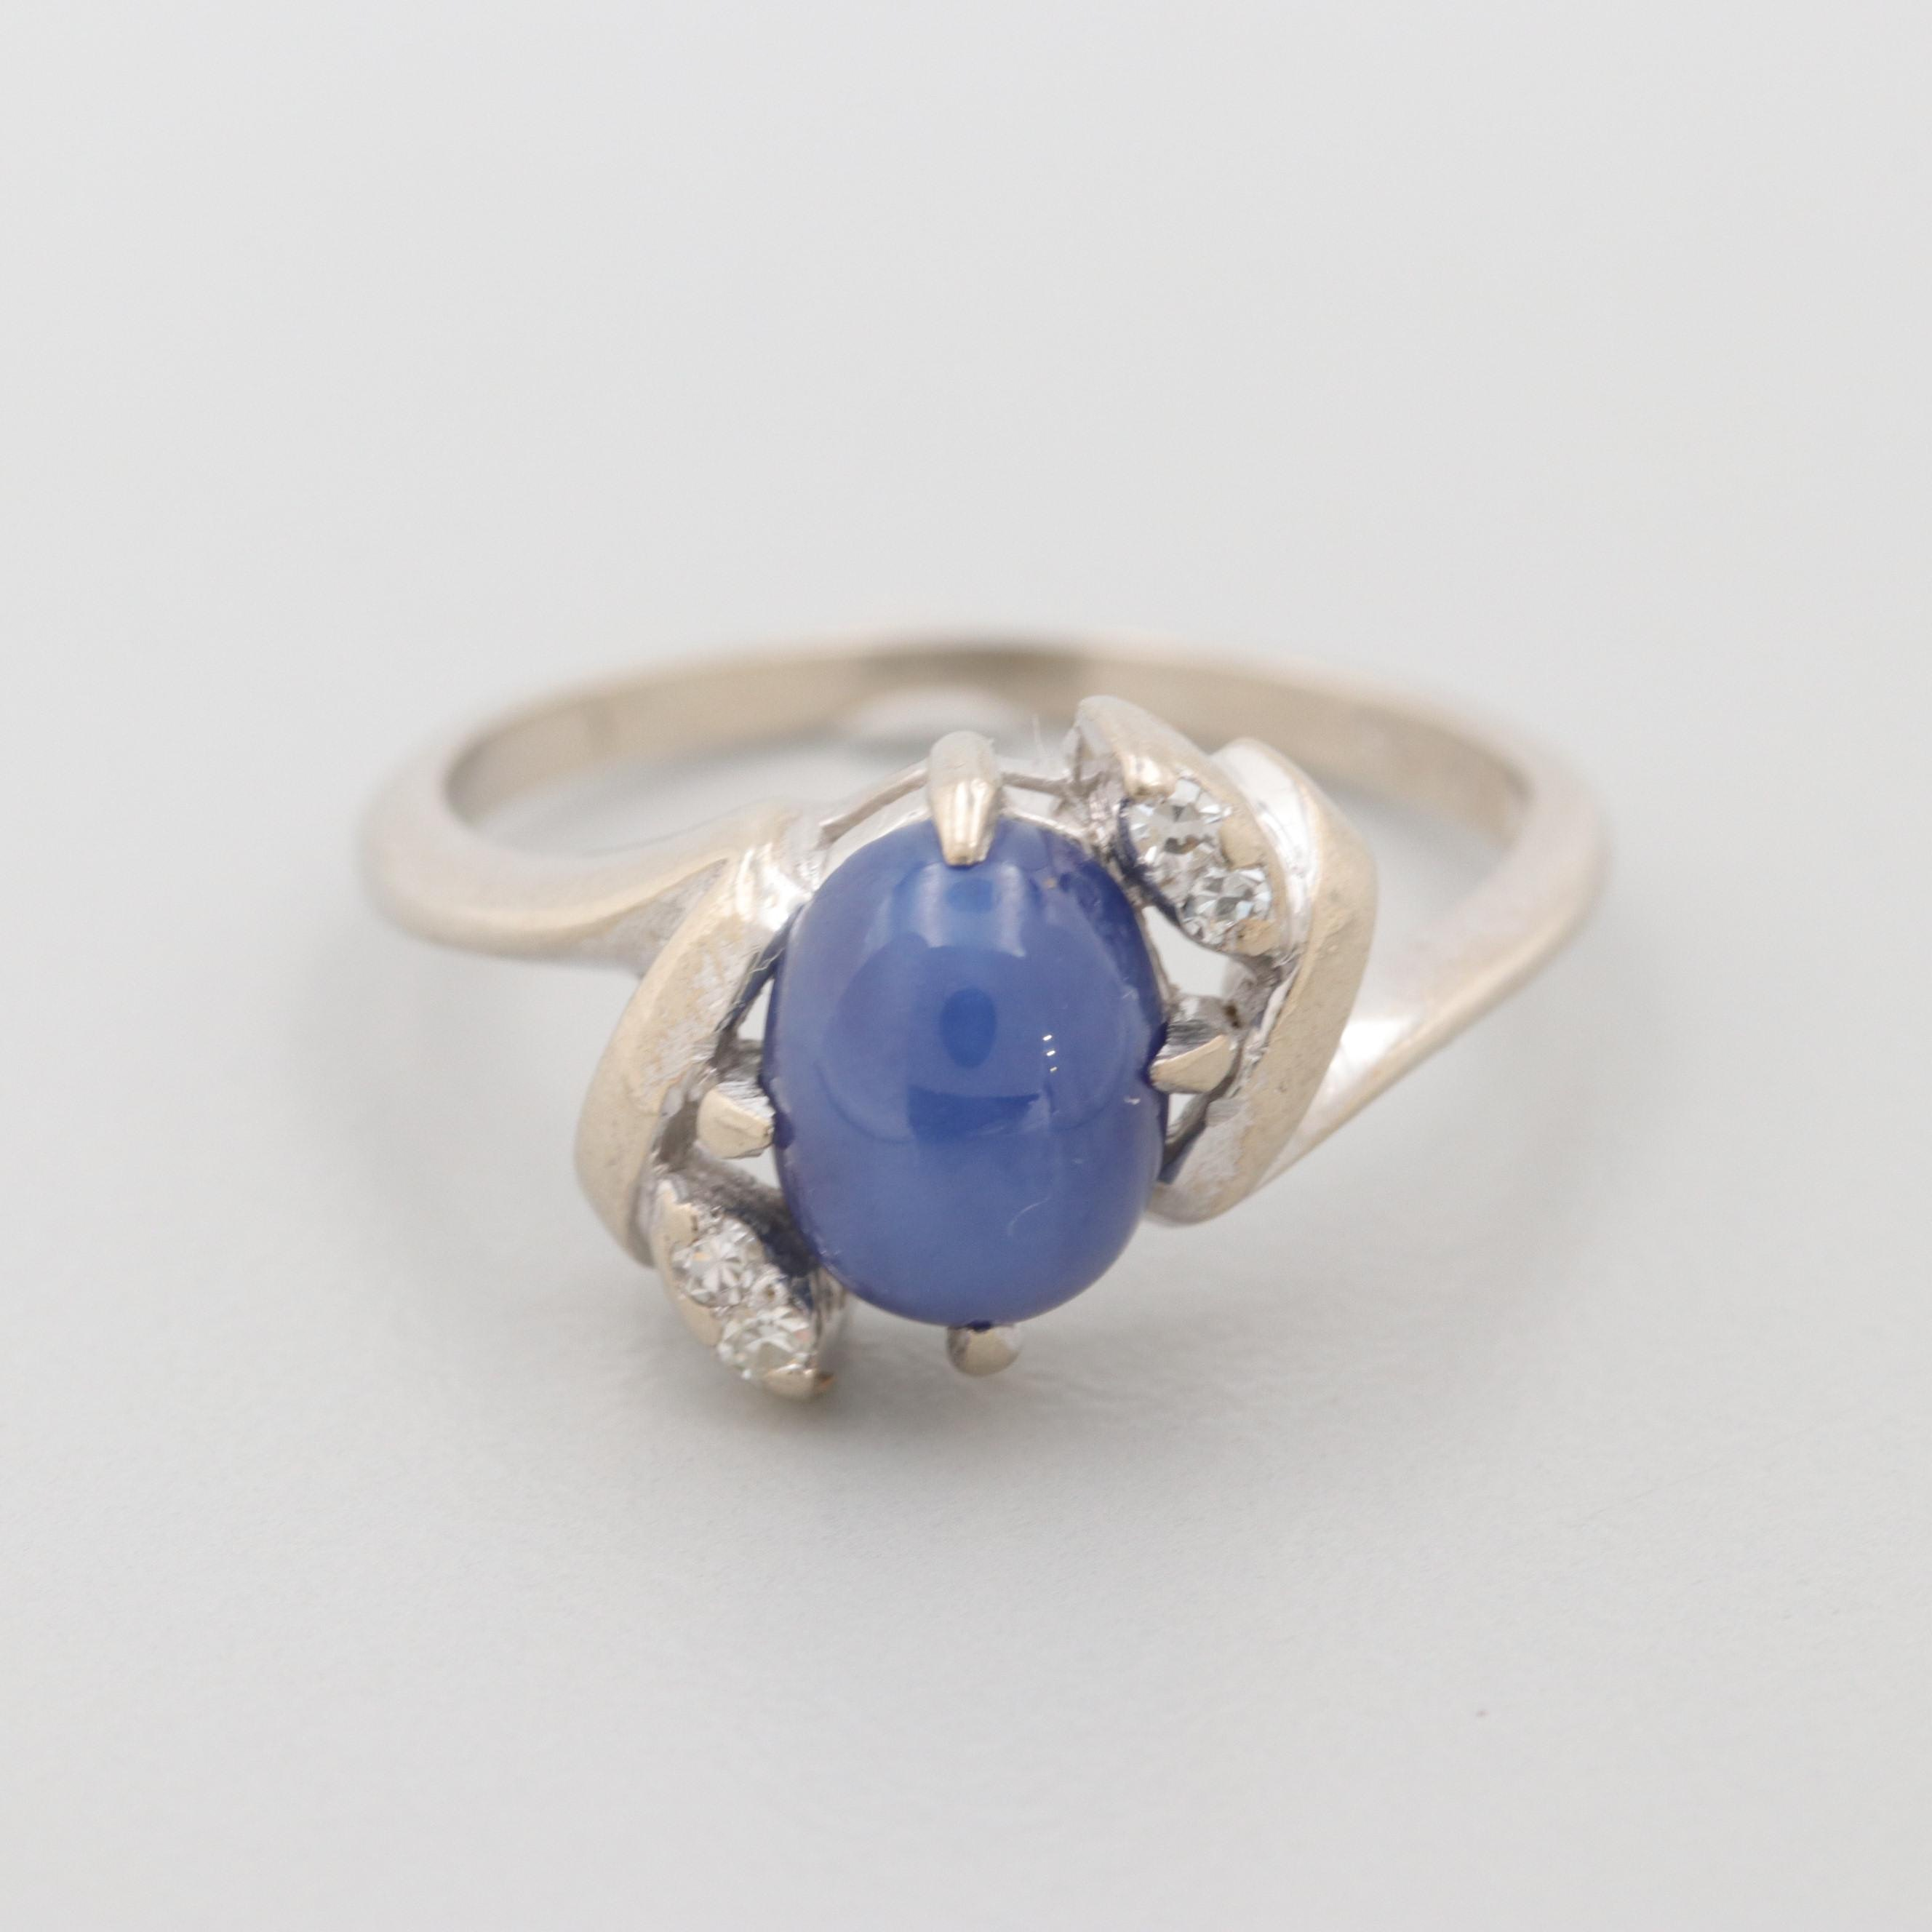 Vintage 14K White Gold Synthetic Star Sapphire and Diamond Ring